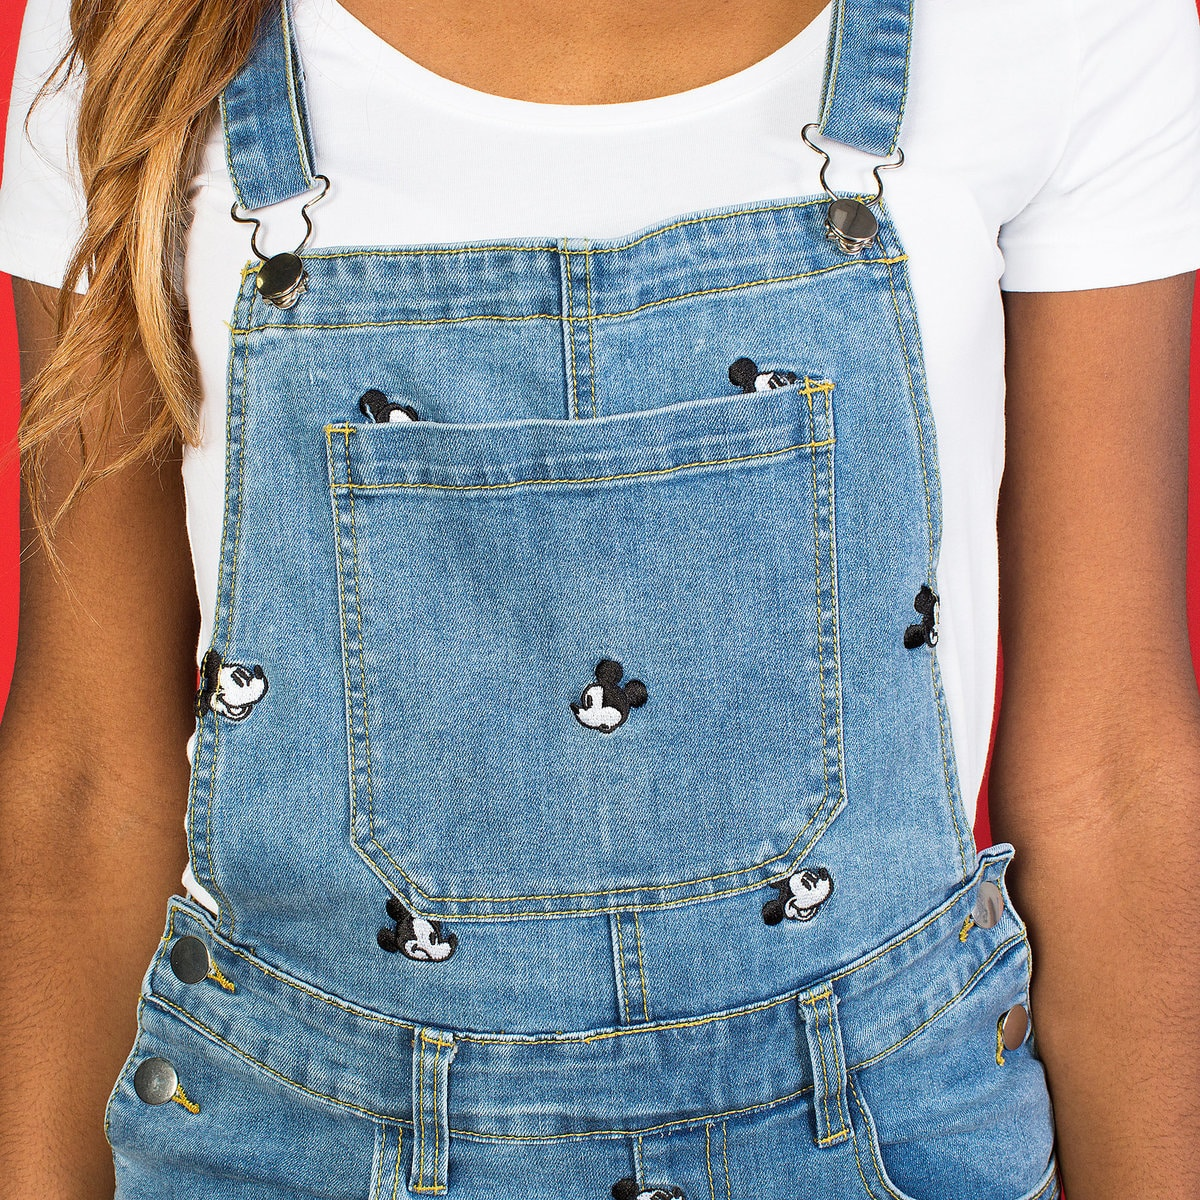 72943dbd3 Product Image of Mickey Mouse Denim Overalls Dress by Cakeworthy # 4